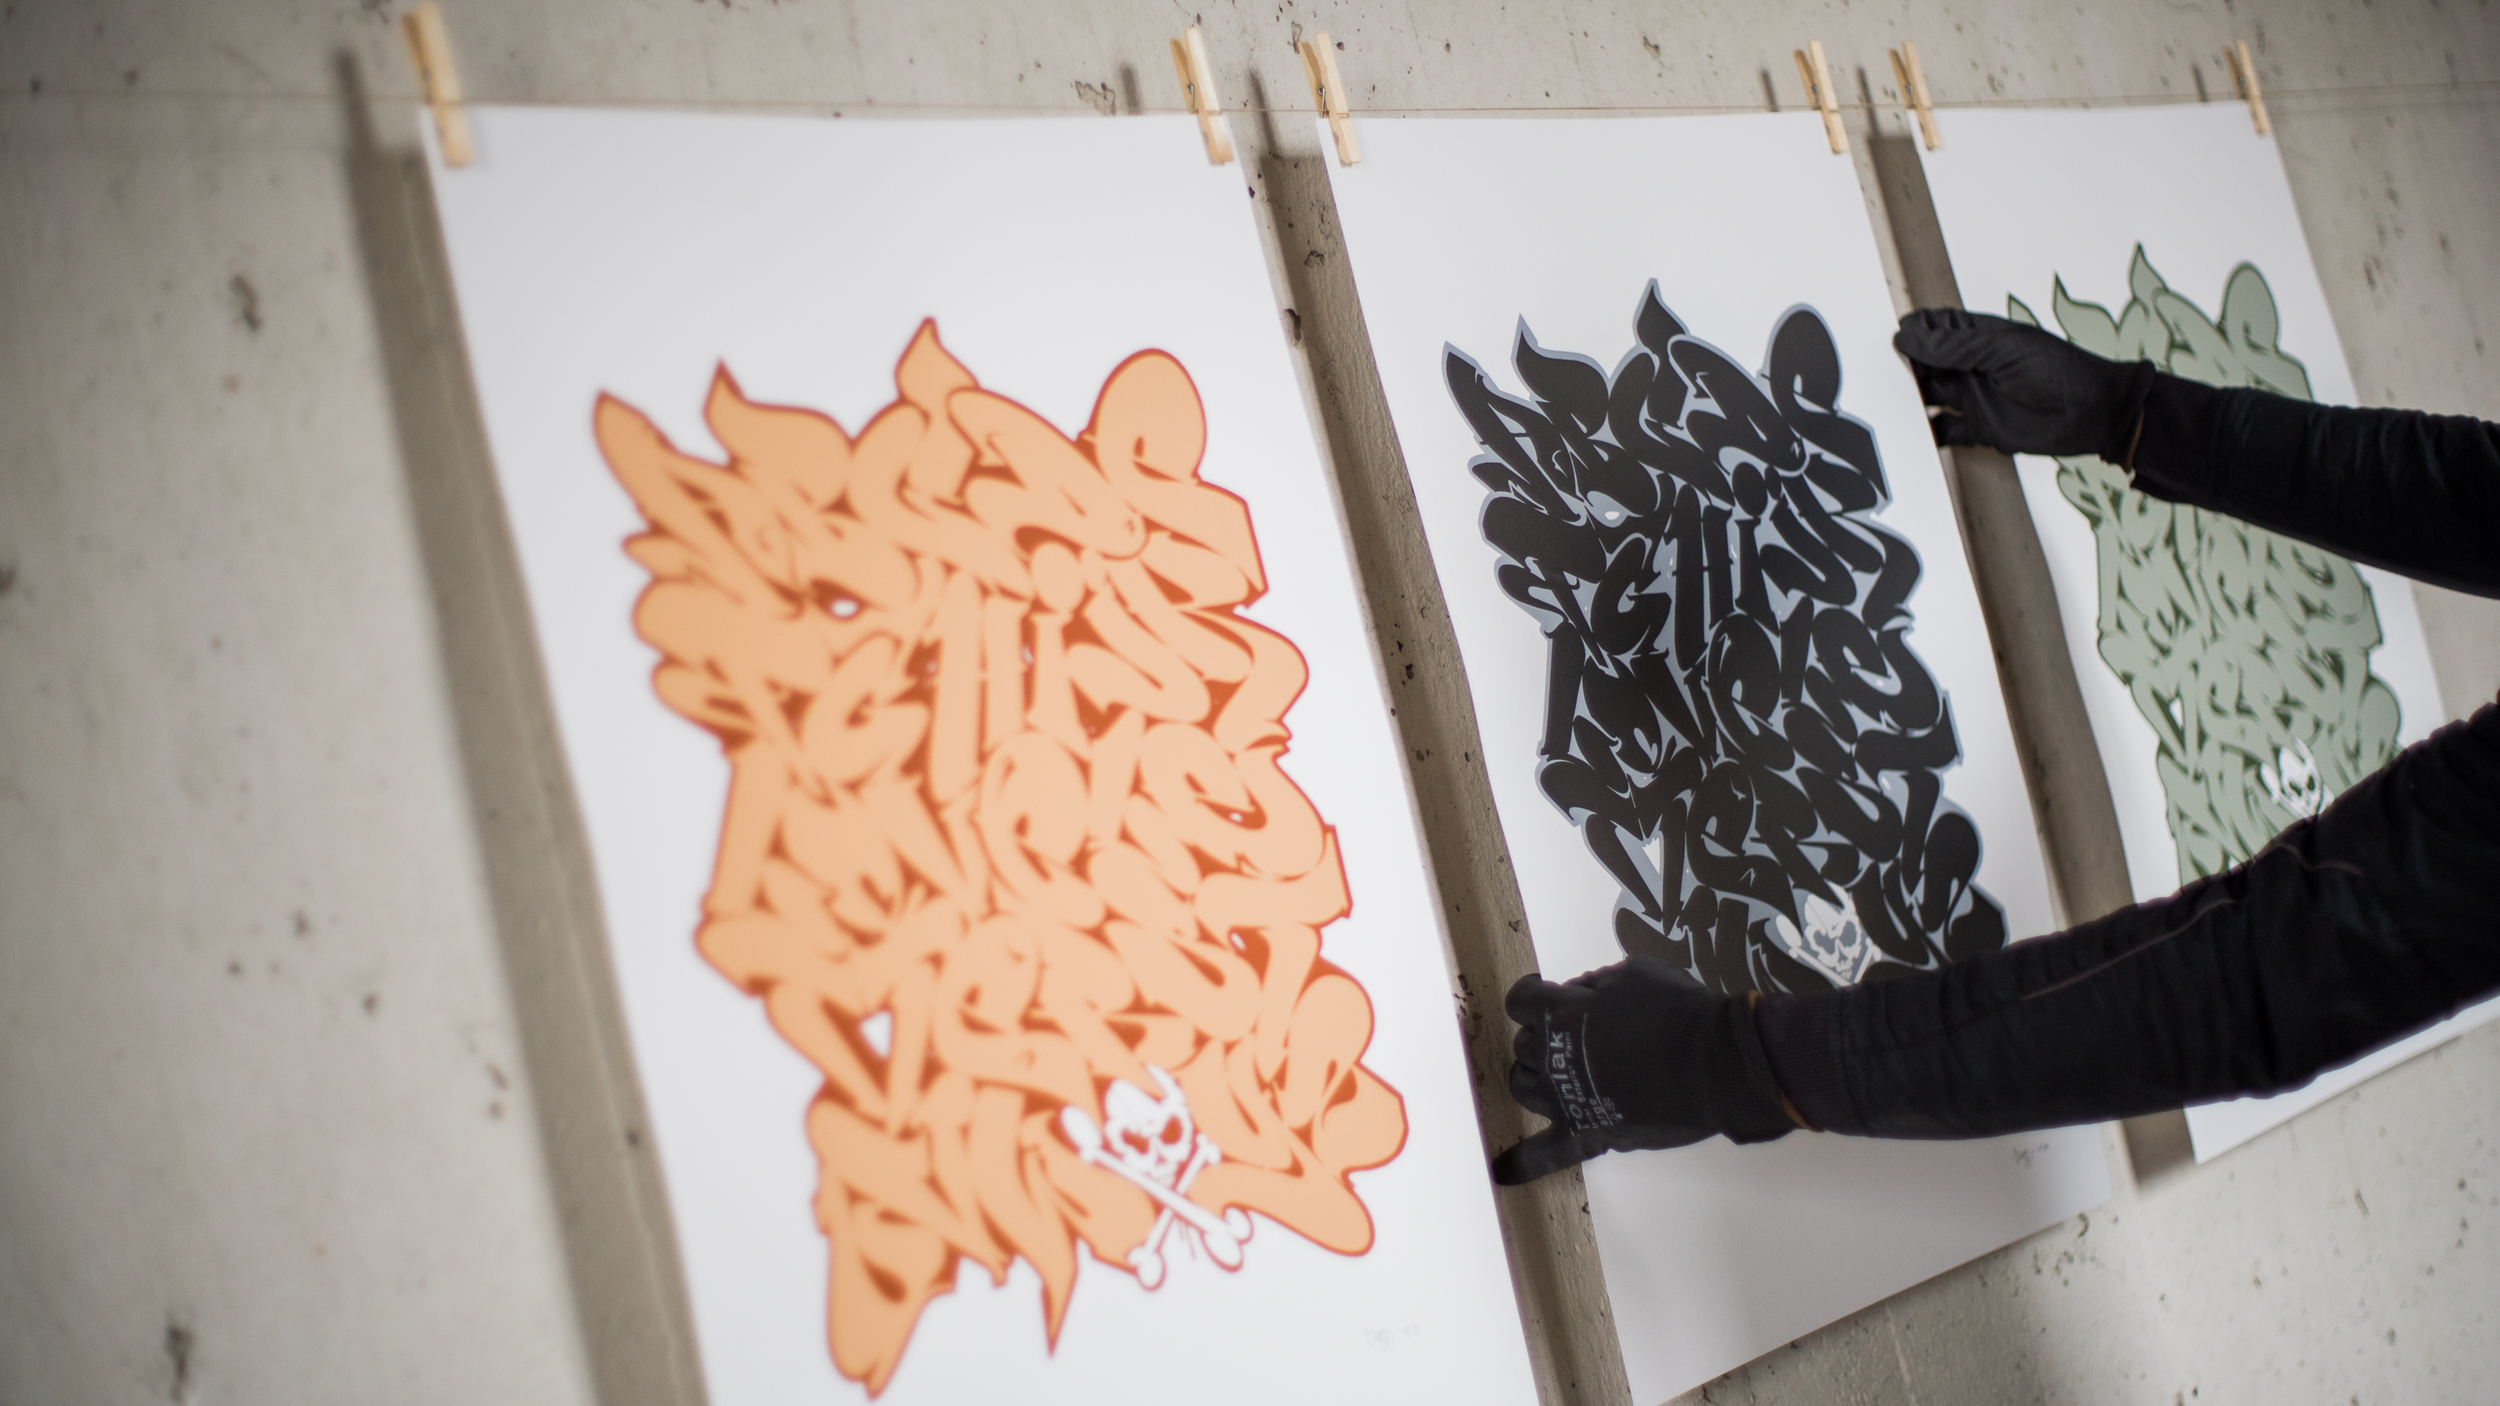 A work by Does - Prints alphabet 2